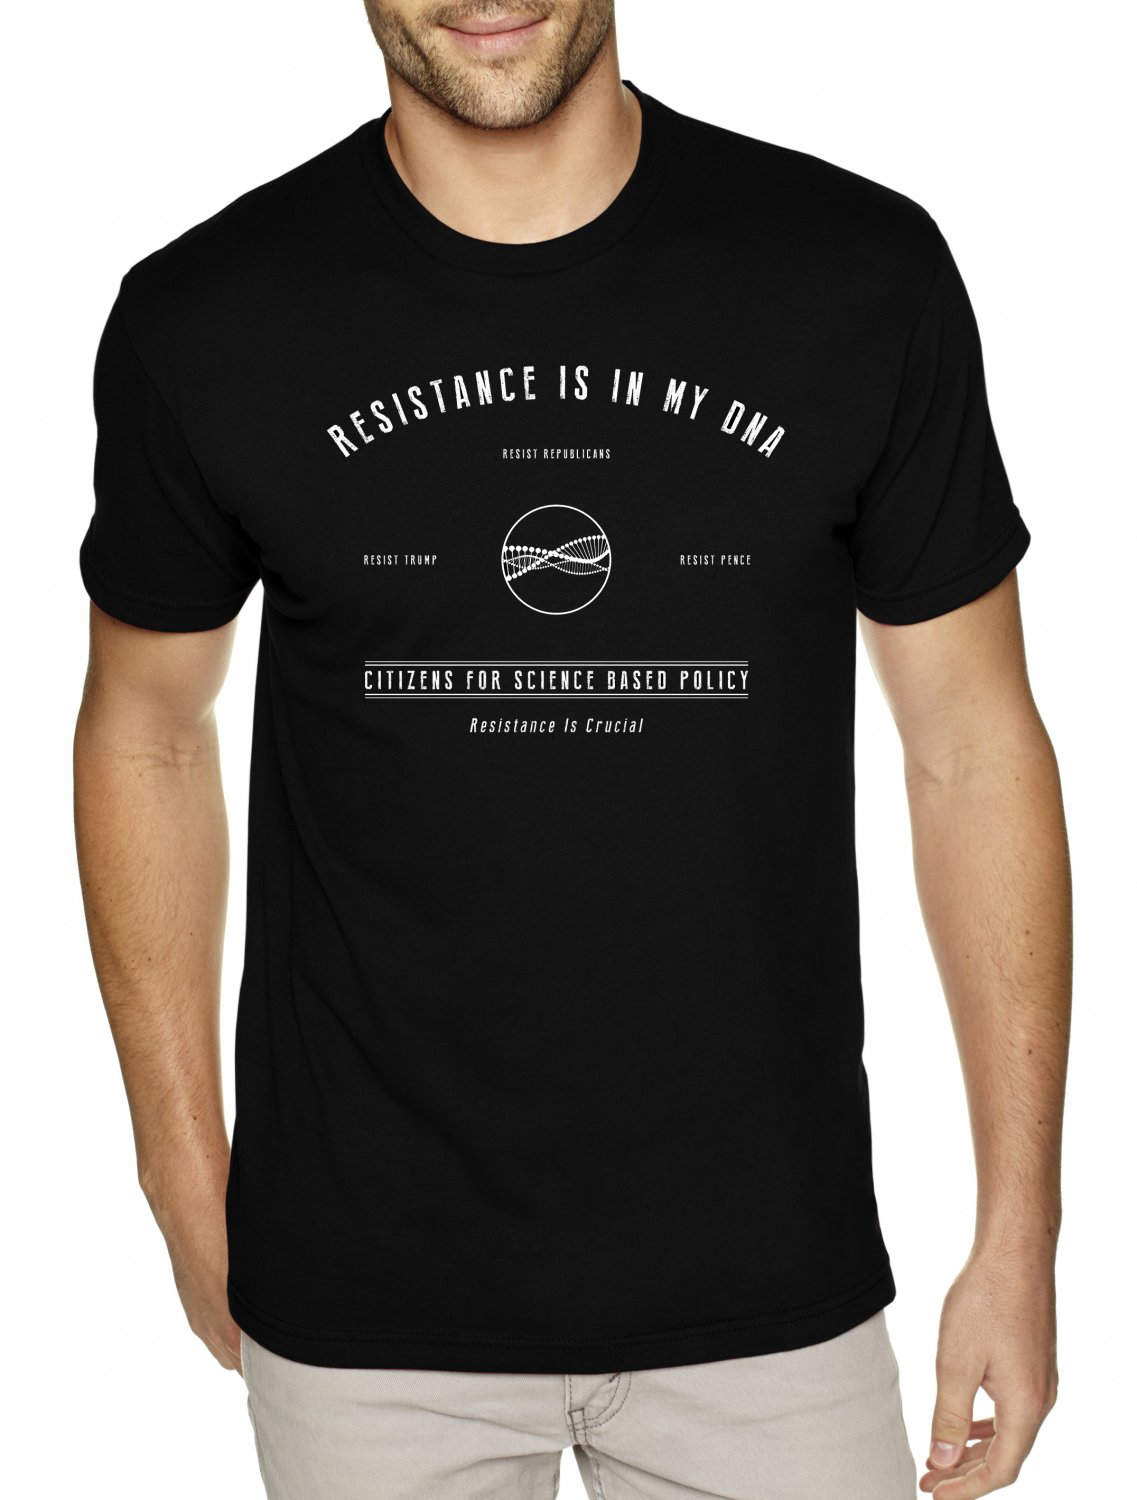 RESISTANCE IS IN MY DNA - Citizens For Science Based Policy - Premium Sueded Shirt SIZE 3XL